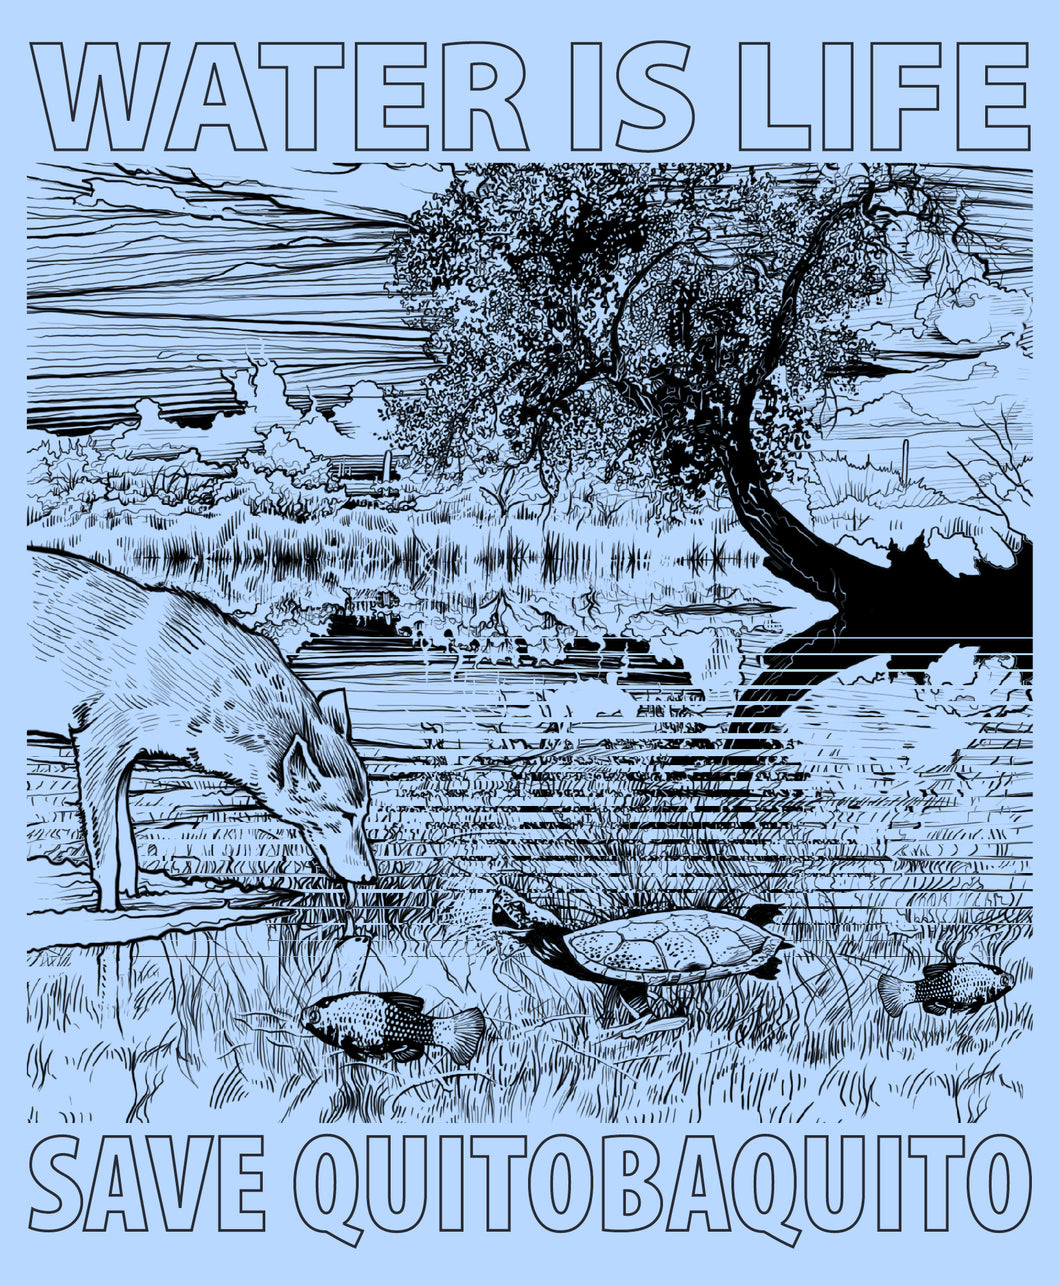 Save Quitobaquito Shirts